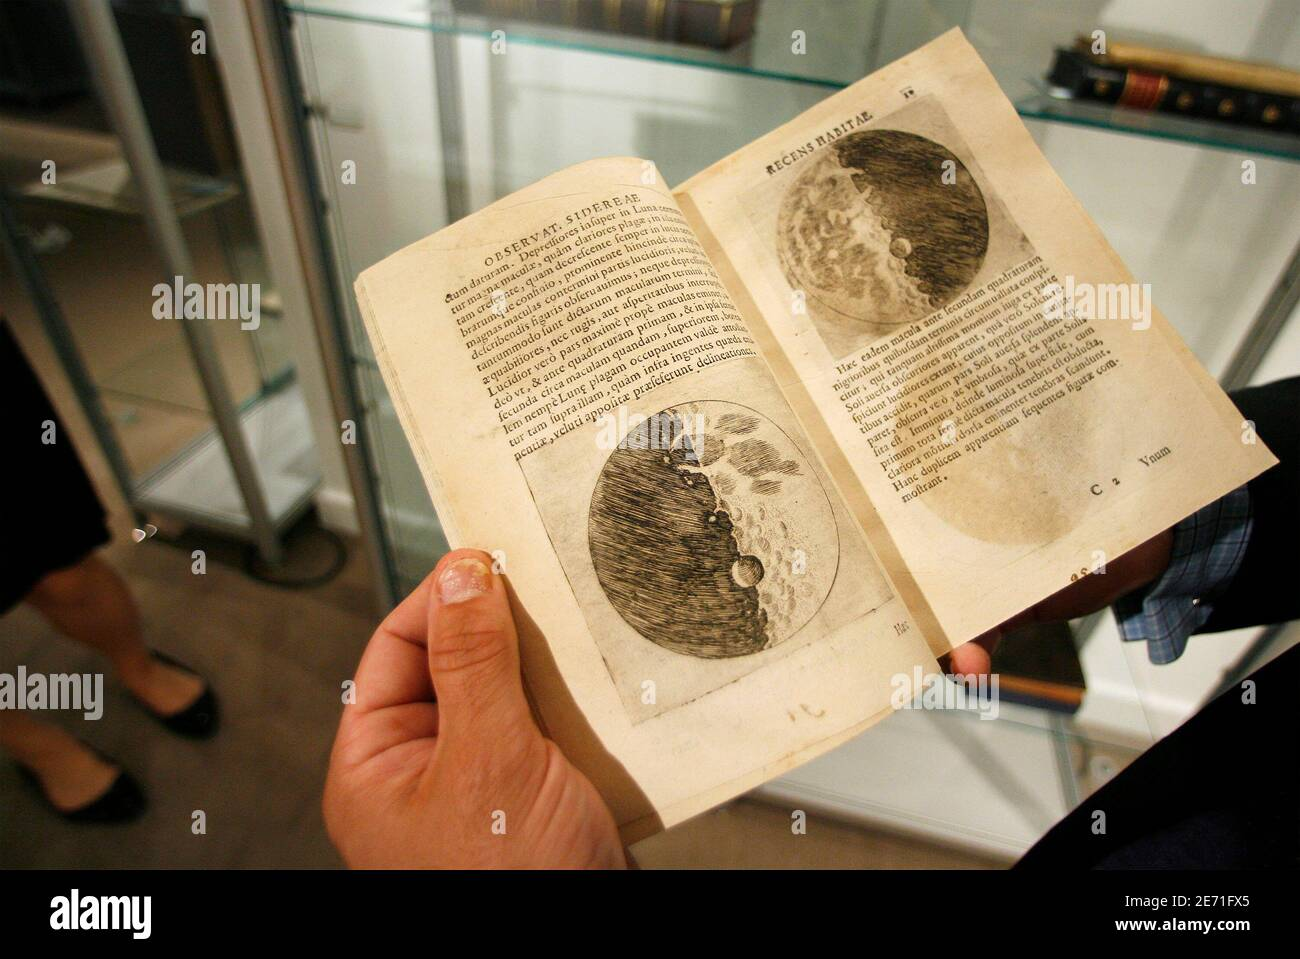 Thomas Lecky, department head of books and manuscripts at Christie's, holds a book with sketches of the moon by Galileo Galilei during a preview at Christie's auction house in New York June 13, 2008.  REUTERS/Lucas Jackson (UNITED STATES) Stock Photo